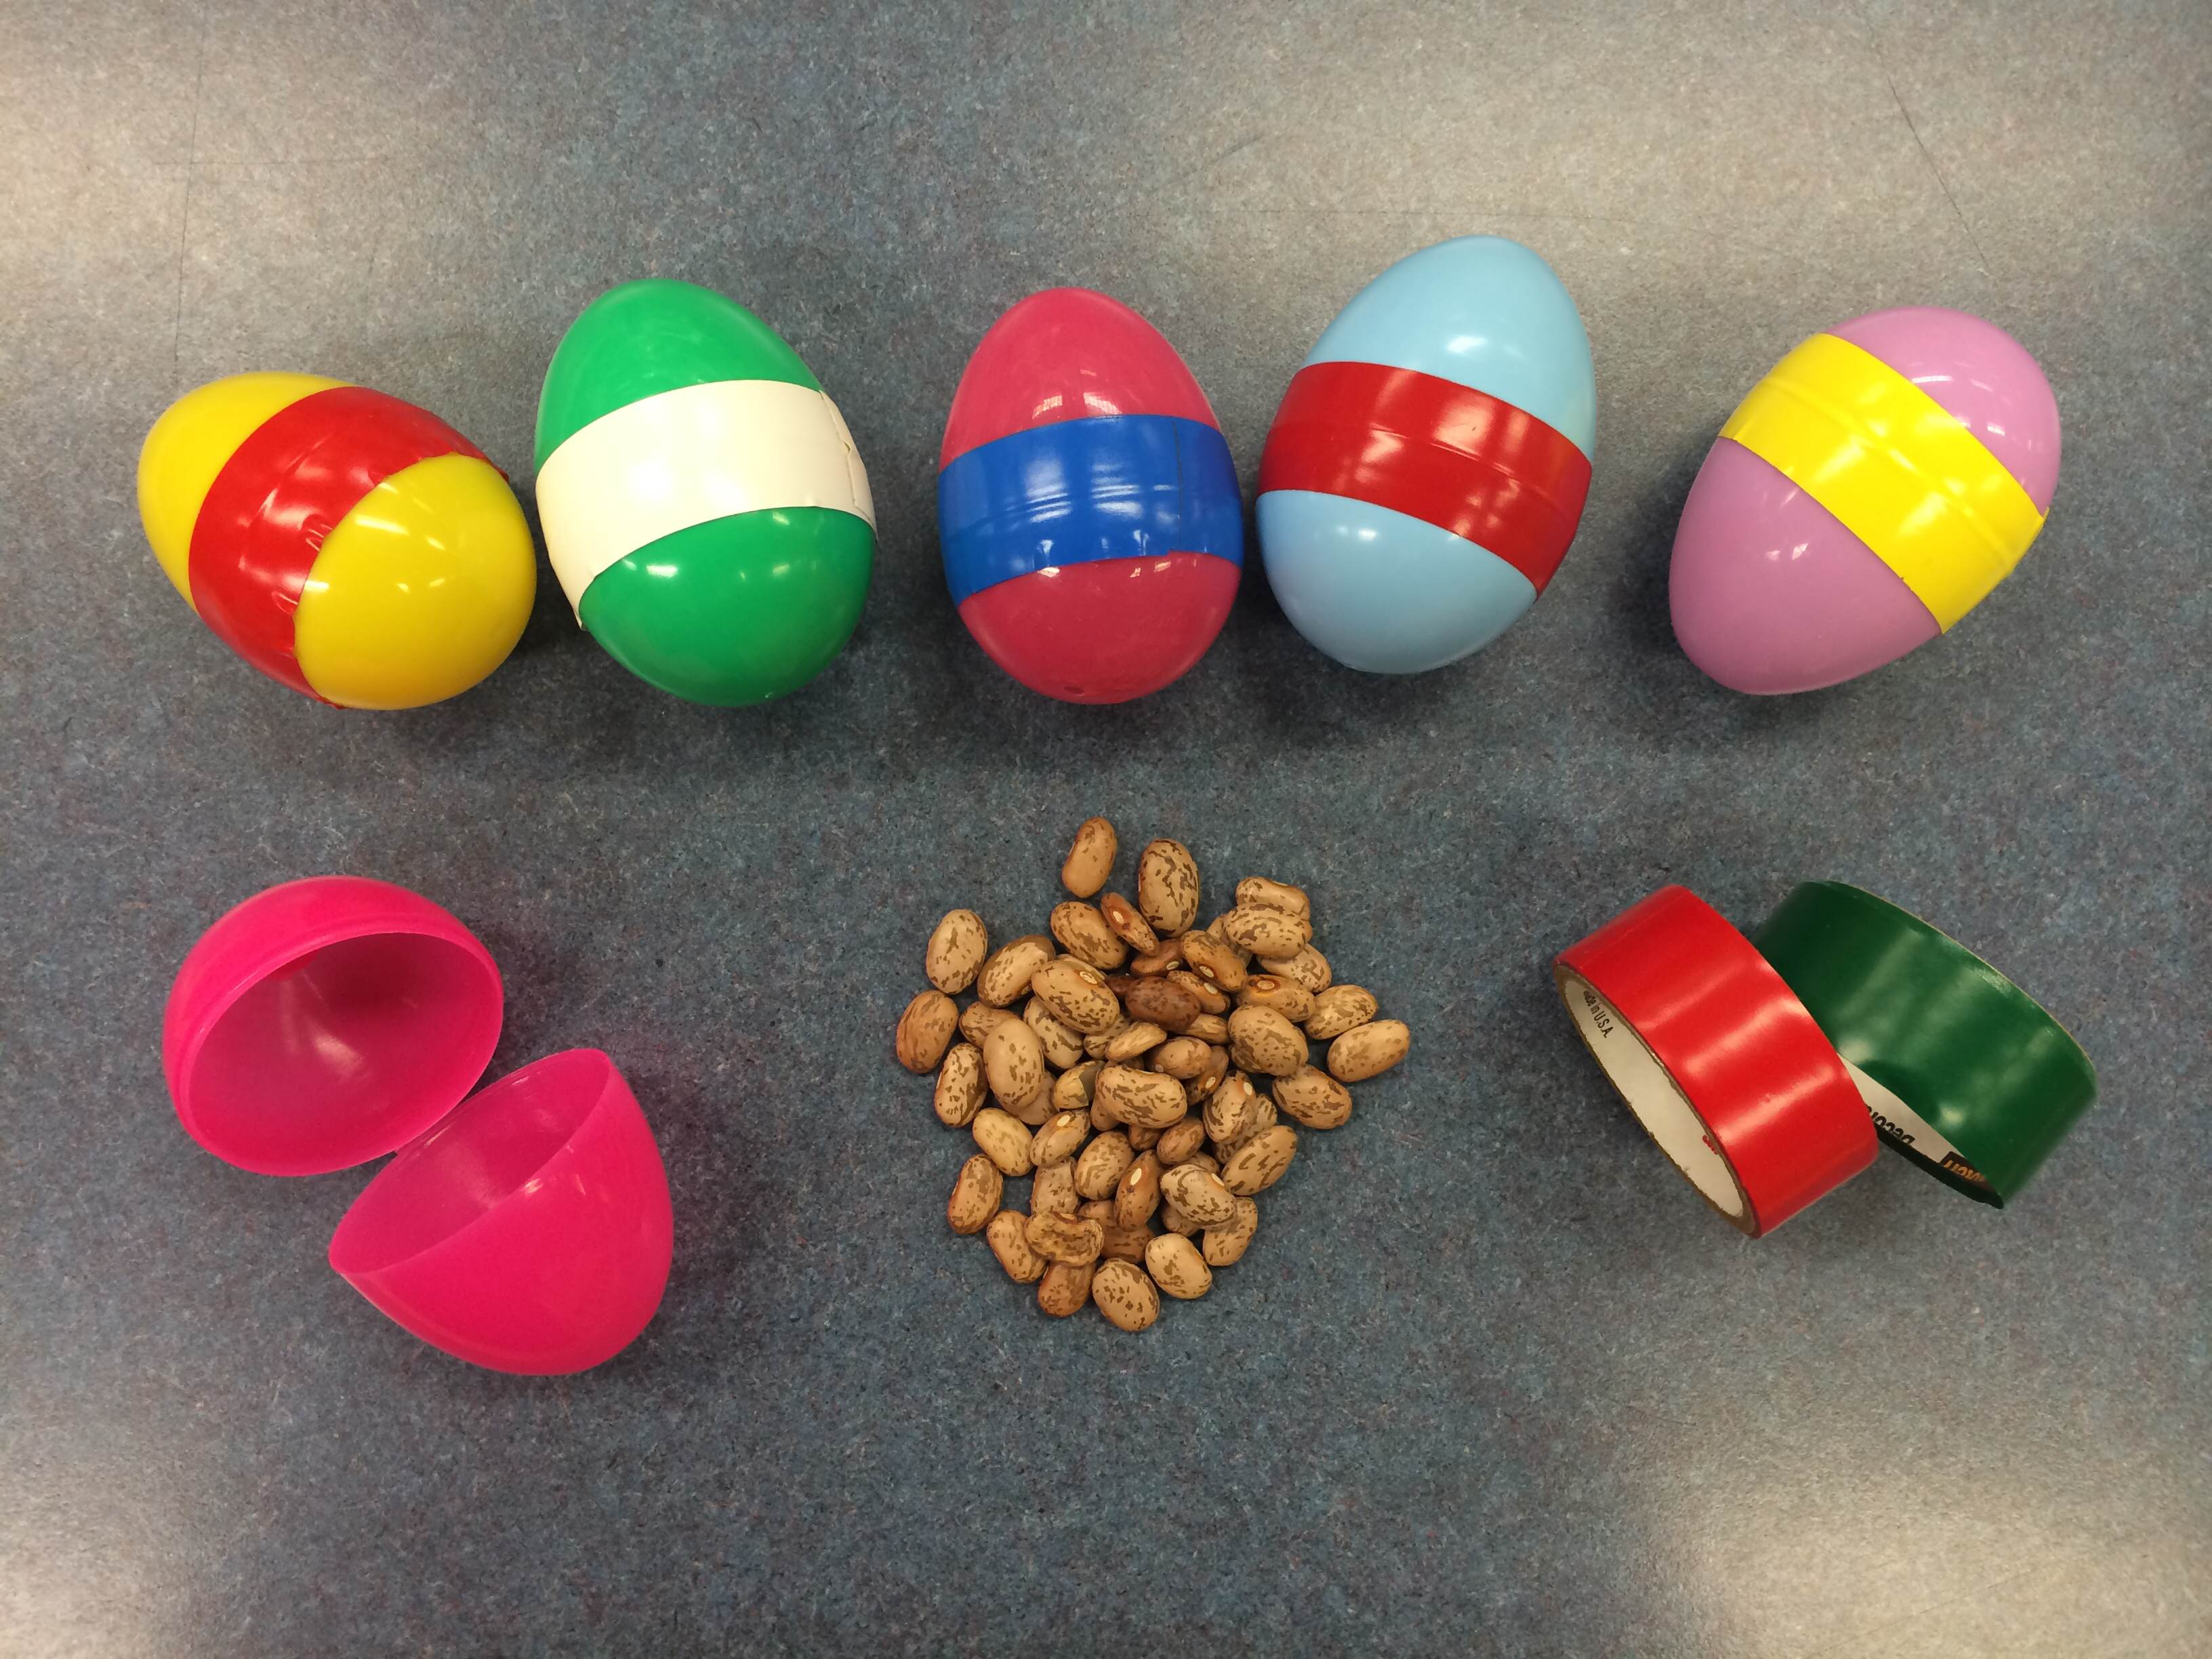 5 egg shakers with a plastic egg, beans, and 2 rolls of plastic tape